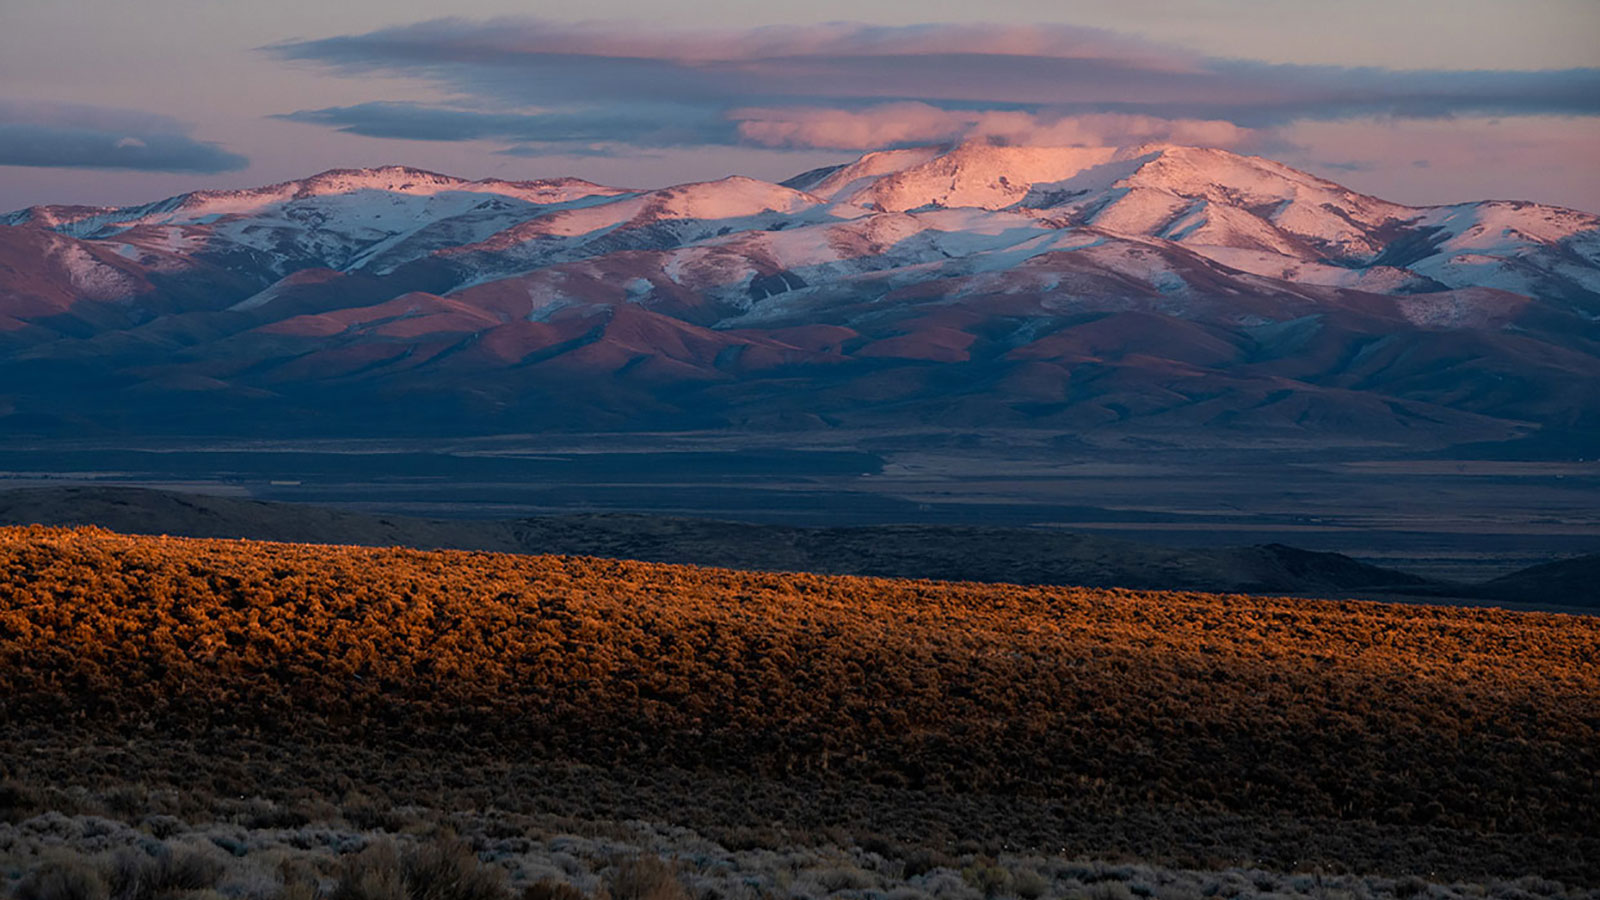 Thacker pass at sunset with snow-covered mountains in the background